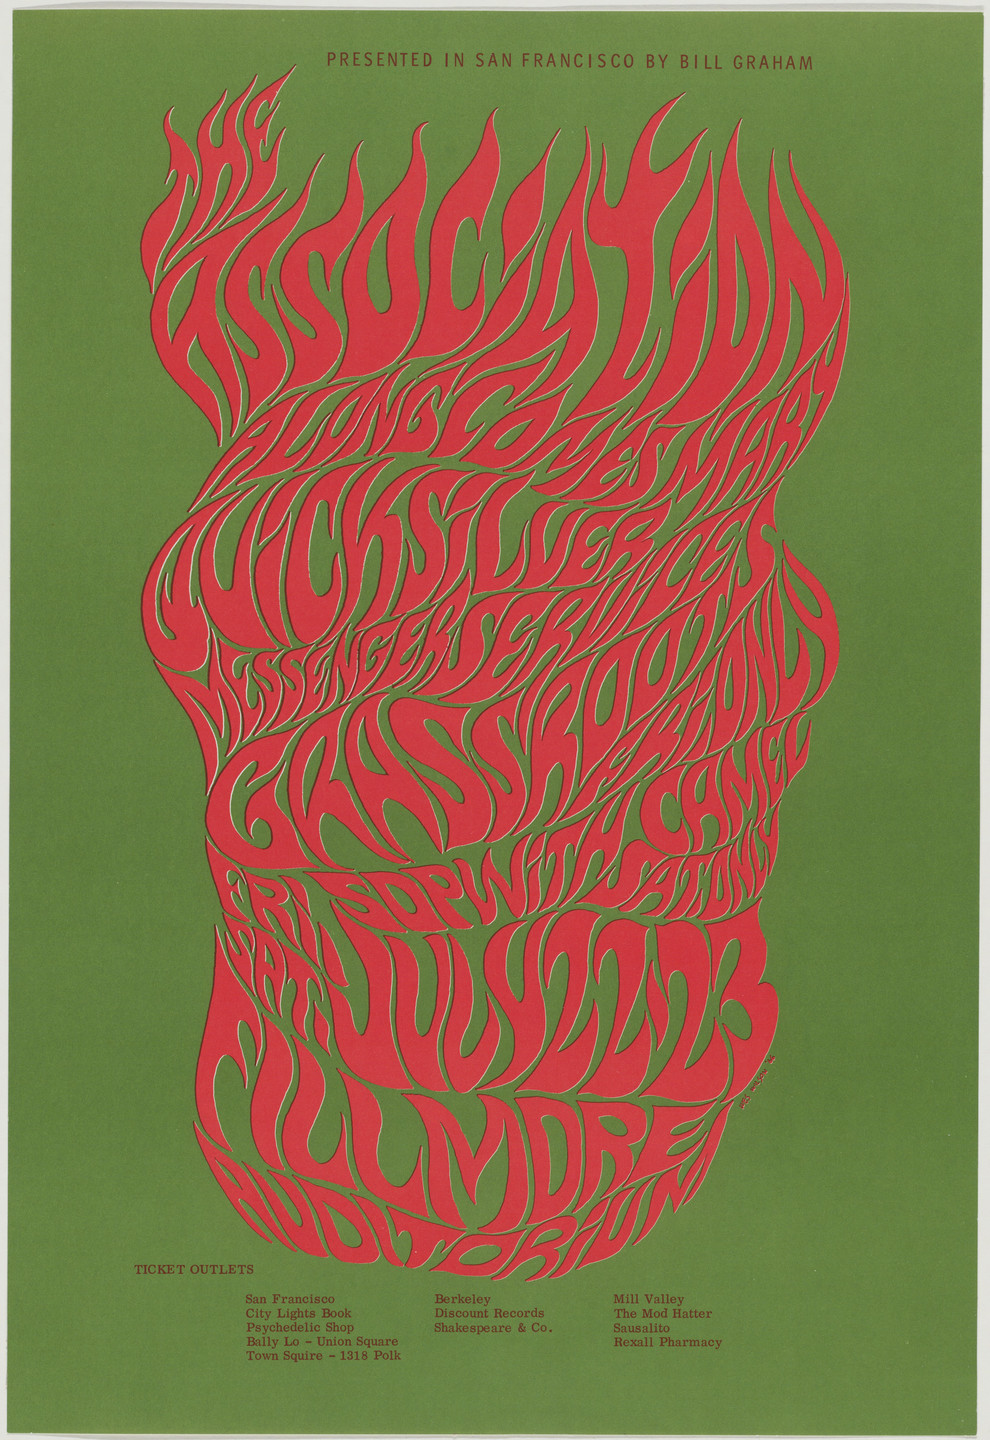 Wes Wilson. The Association, Along Comes Mary, Quicksilver Messenger Service. 1966